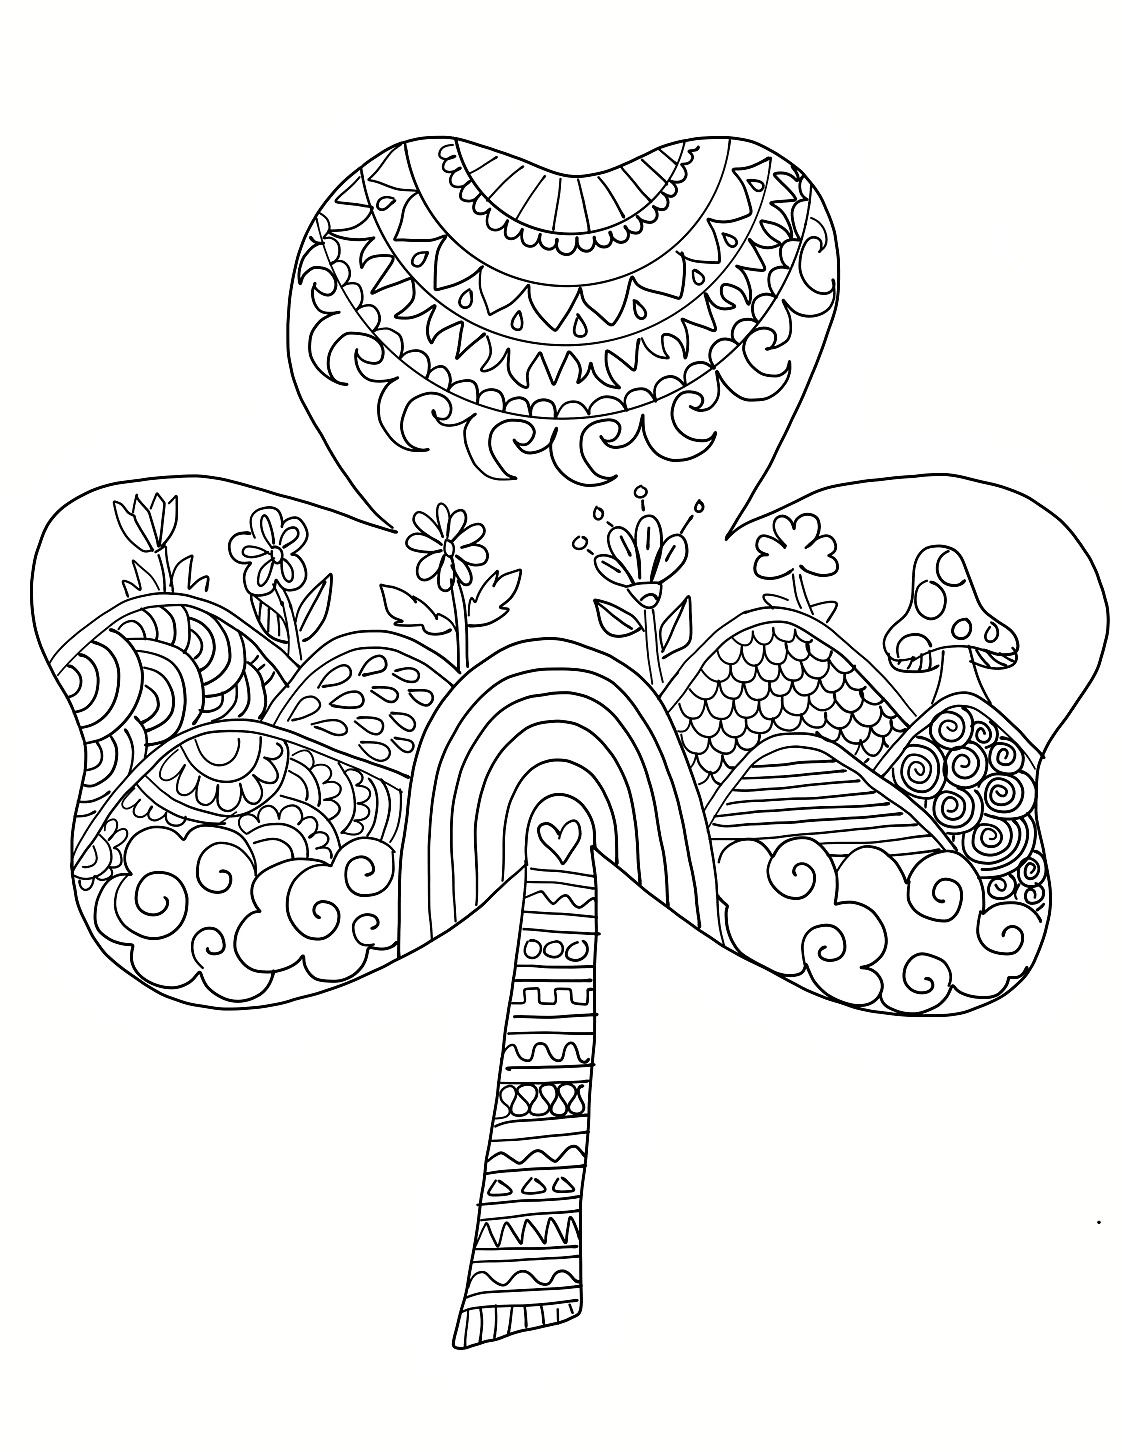 St Patrick S Day Coloring Pages For Adults Ivedi Preceptiv